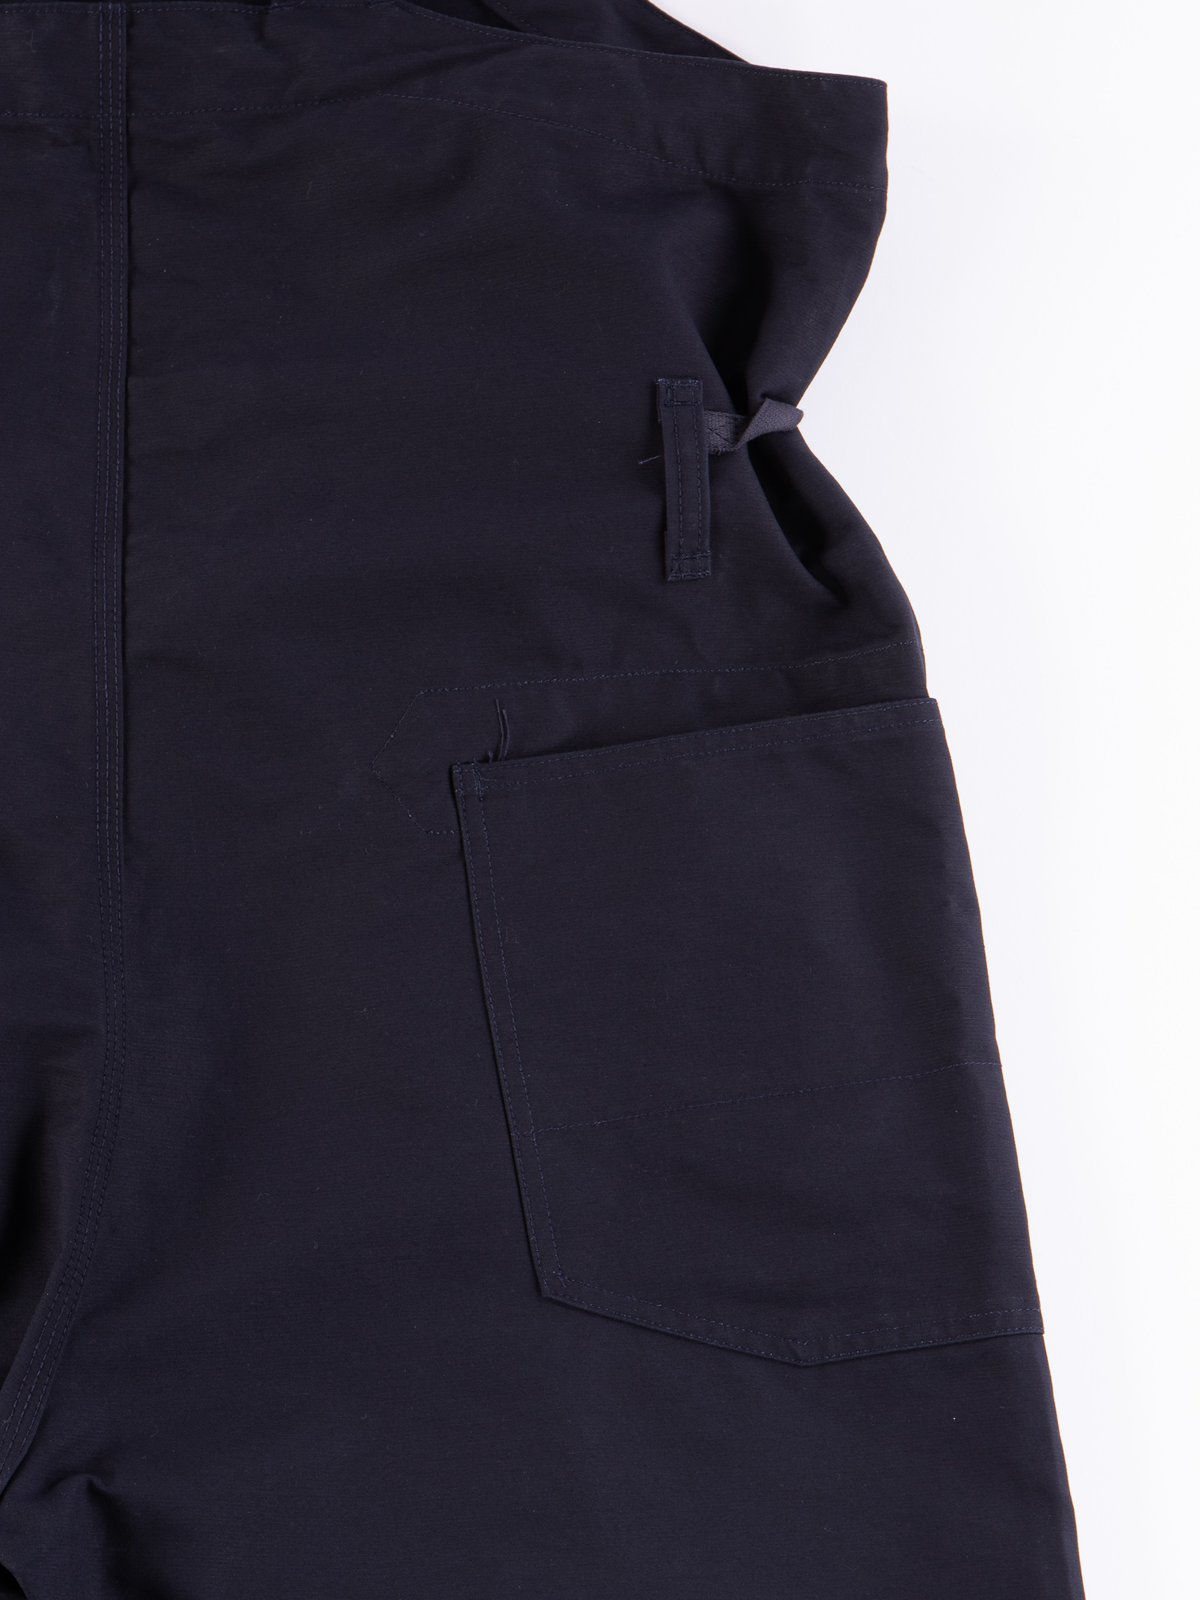 Navy Cotton Double Cloth Waders - Image 8